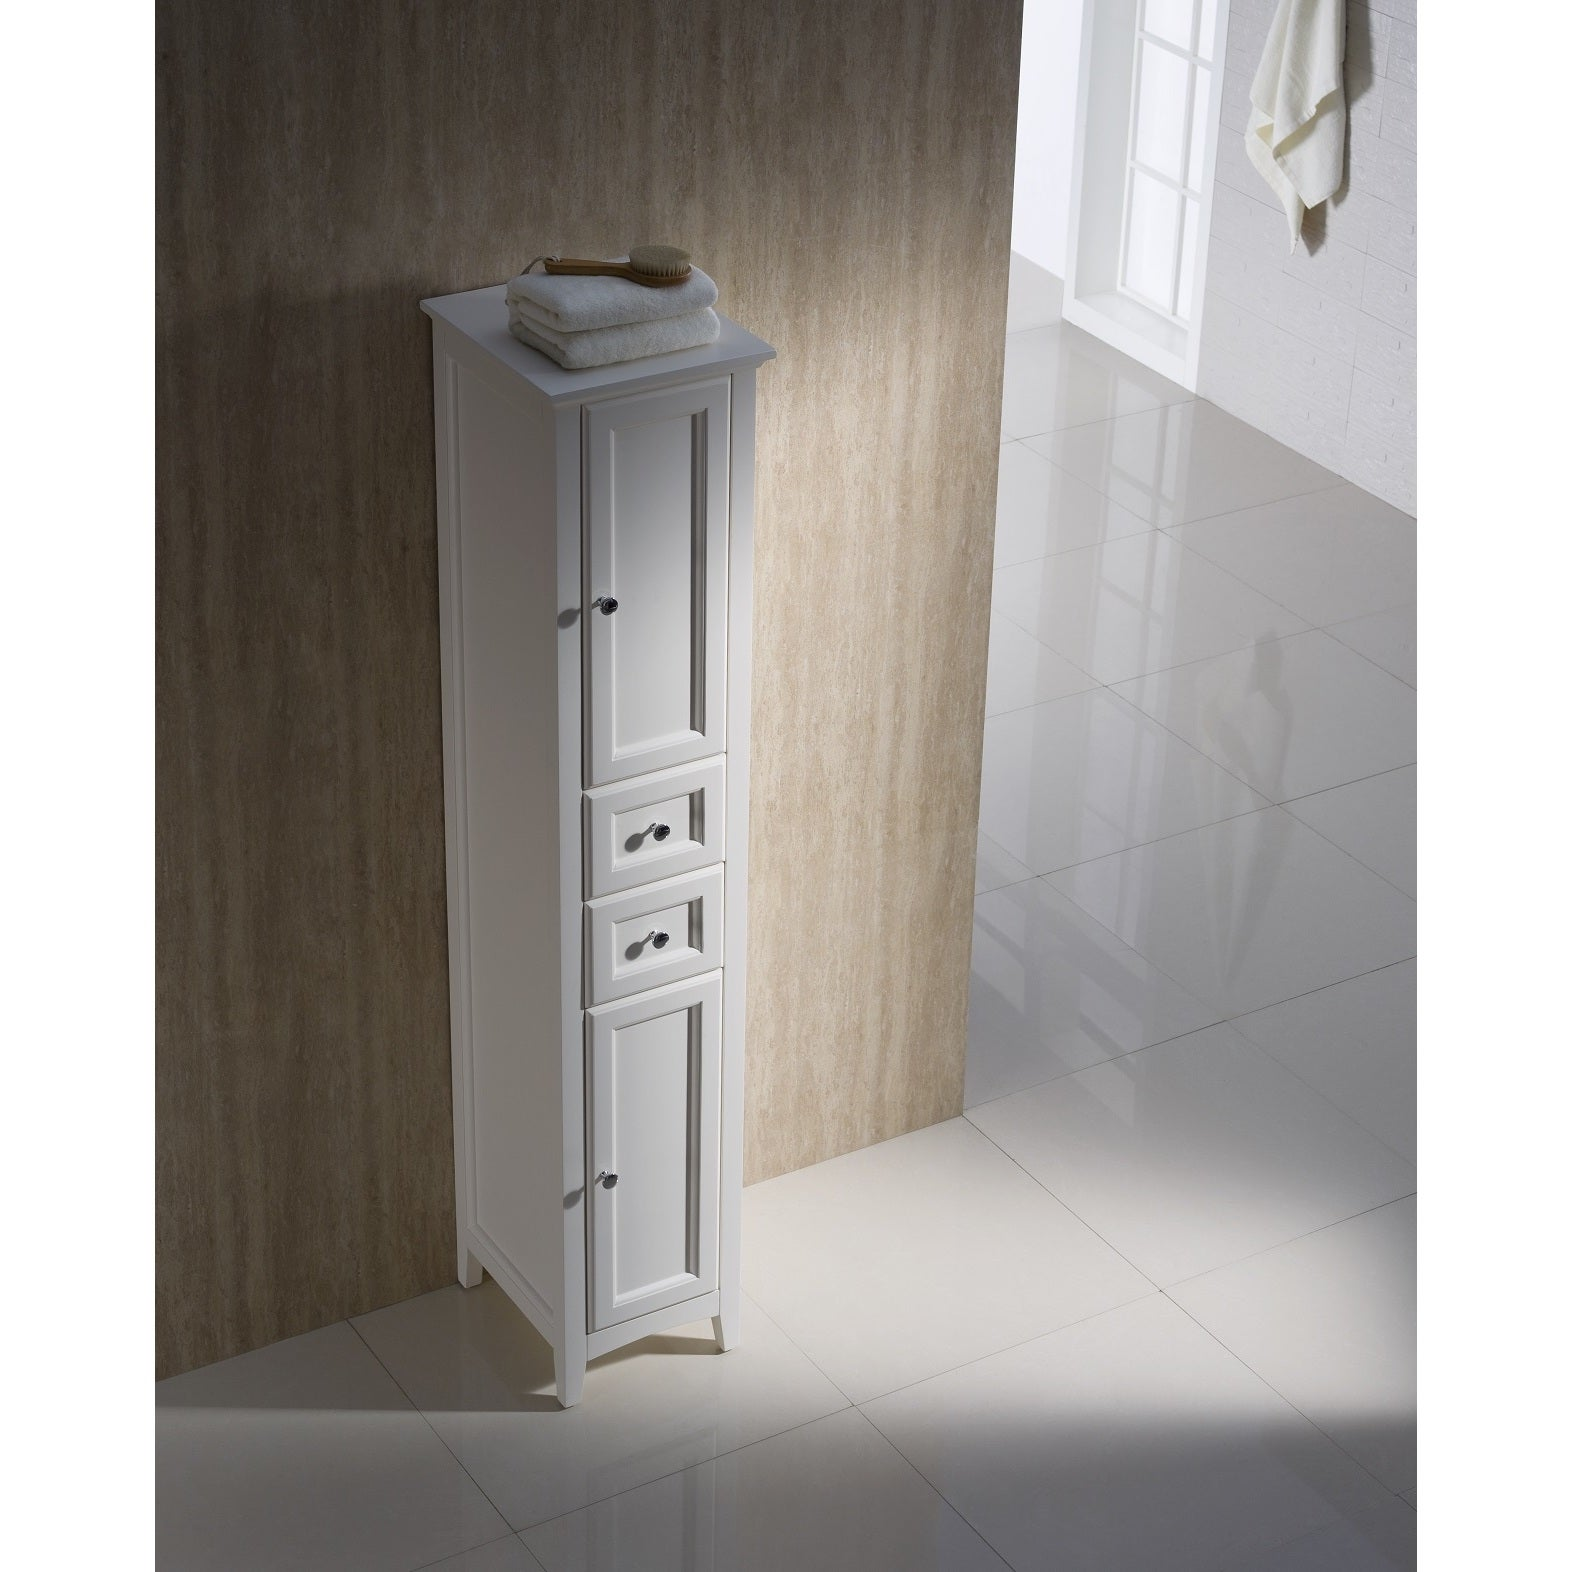 Shop Fresca Oxford Antique White Tall Bathroom Linen Cabinet - Free  Shipping Today - Overstock.com - 10167386 - Shop Fresca Oxford Antique White Tall Bathroom Linen Cabinet - Free